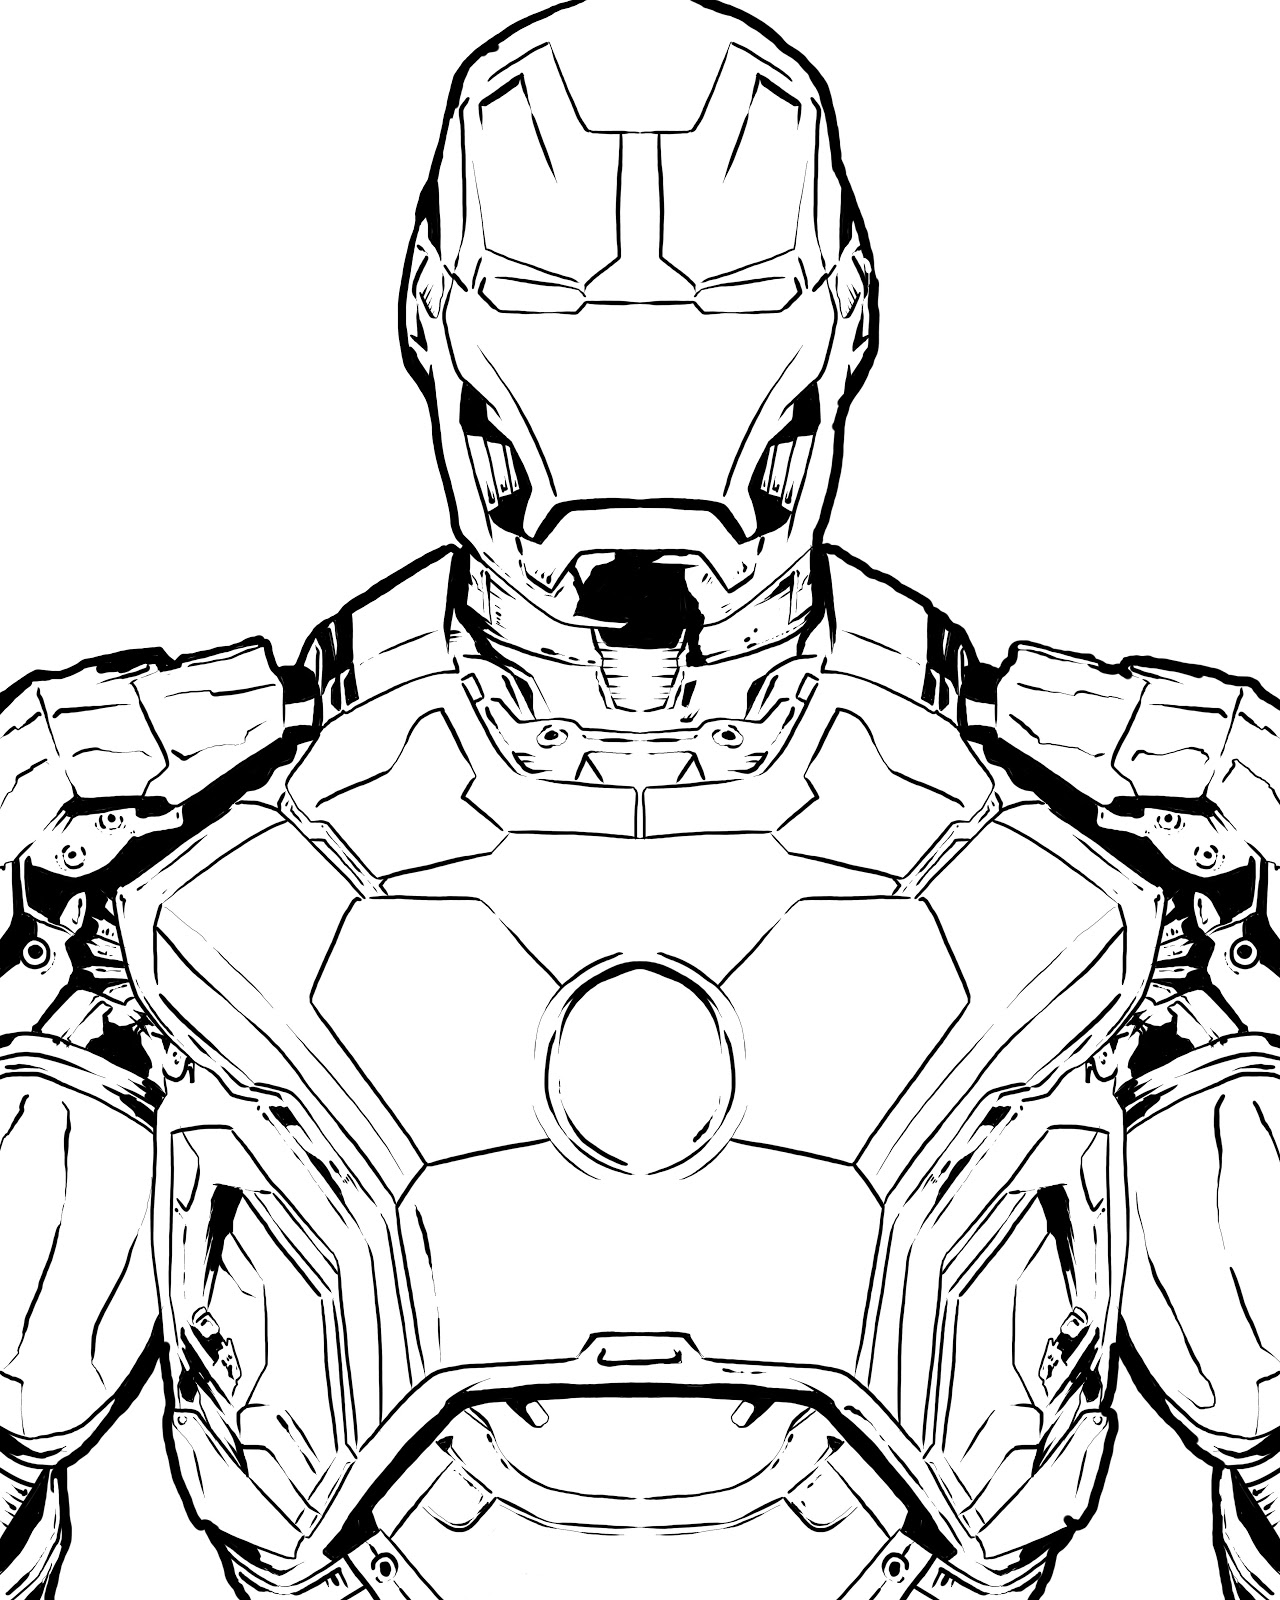 iron man armor sketch images pictures becuo - Iron Man Coloring Pages Mark